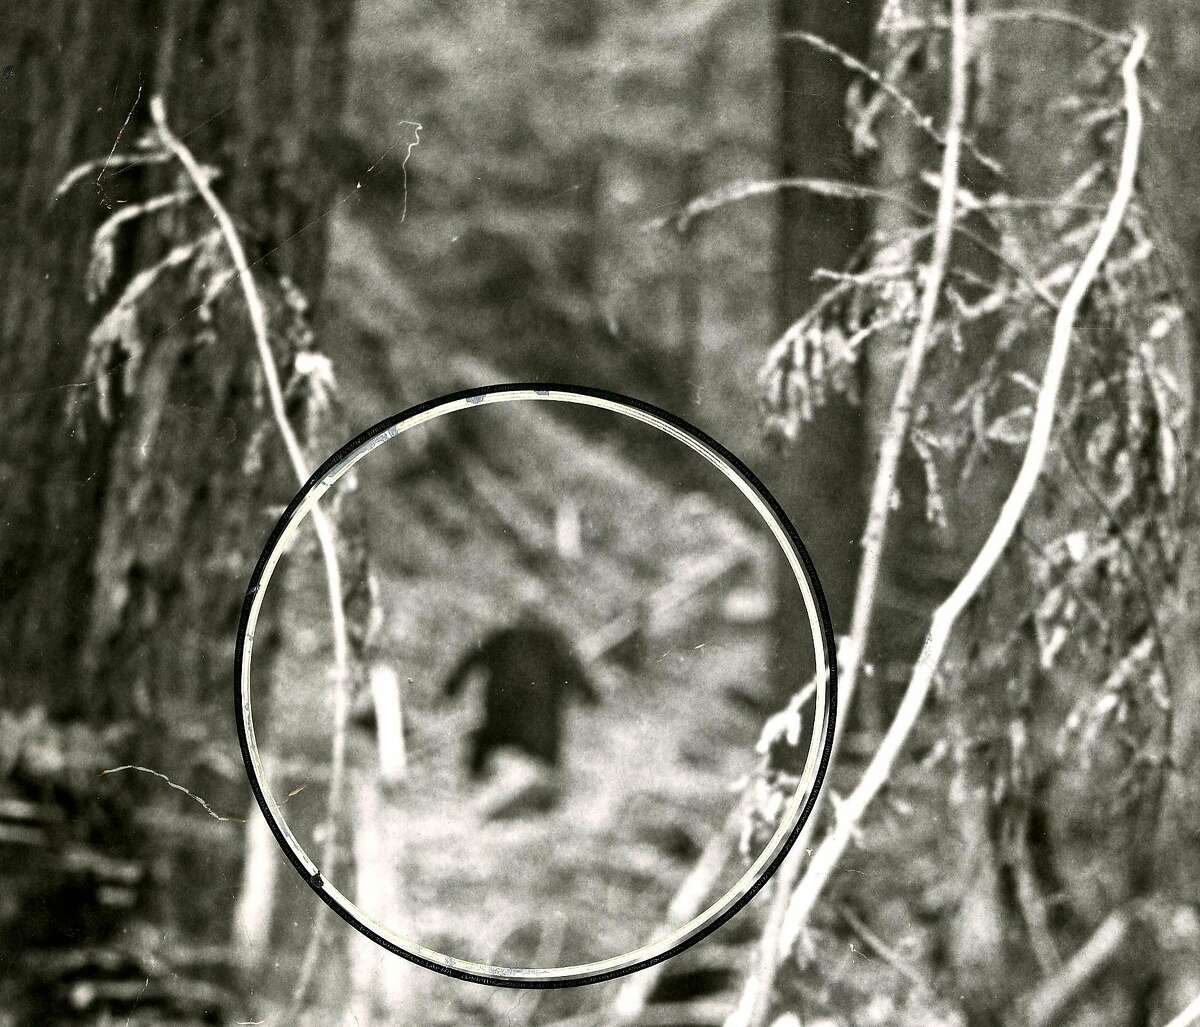 A still image of a purported Bigfoot from the San Francisco Chronicle archives.